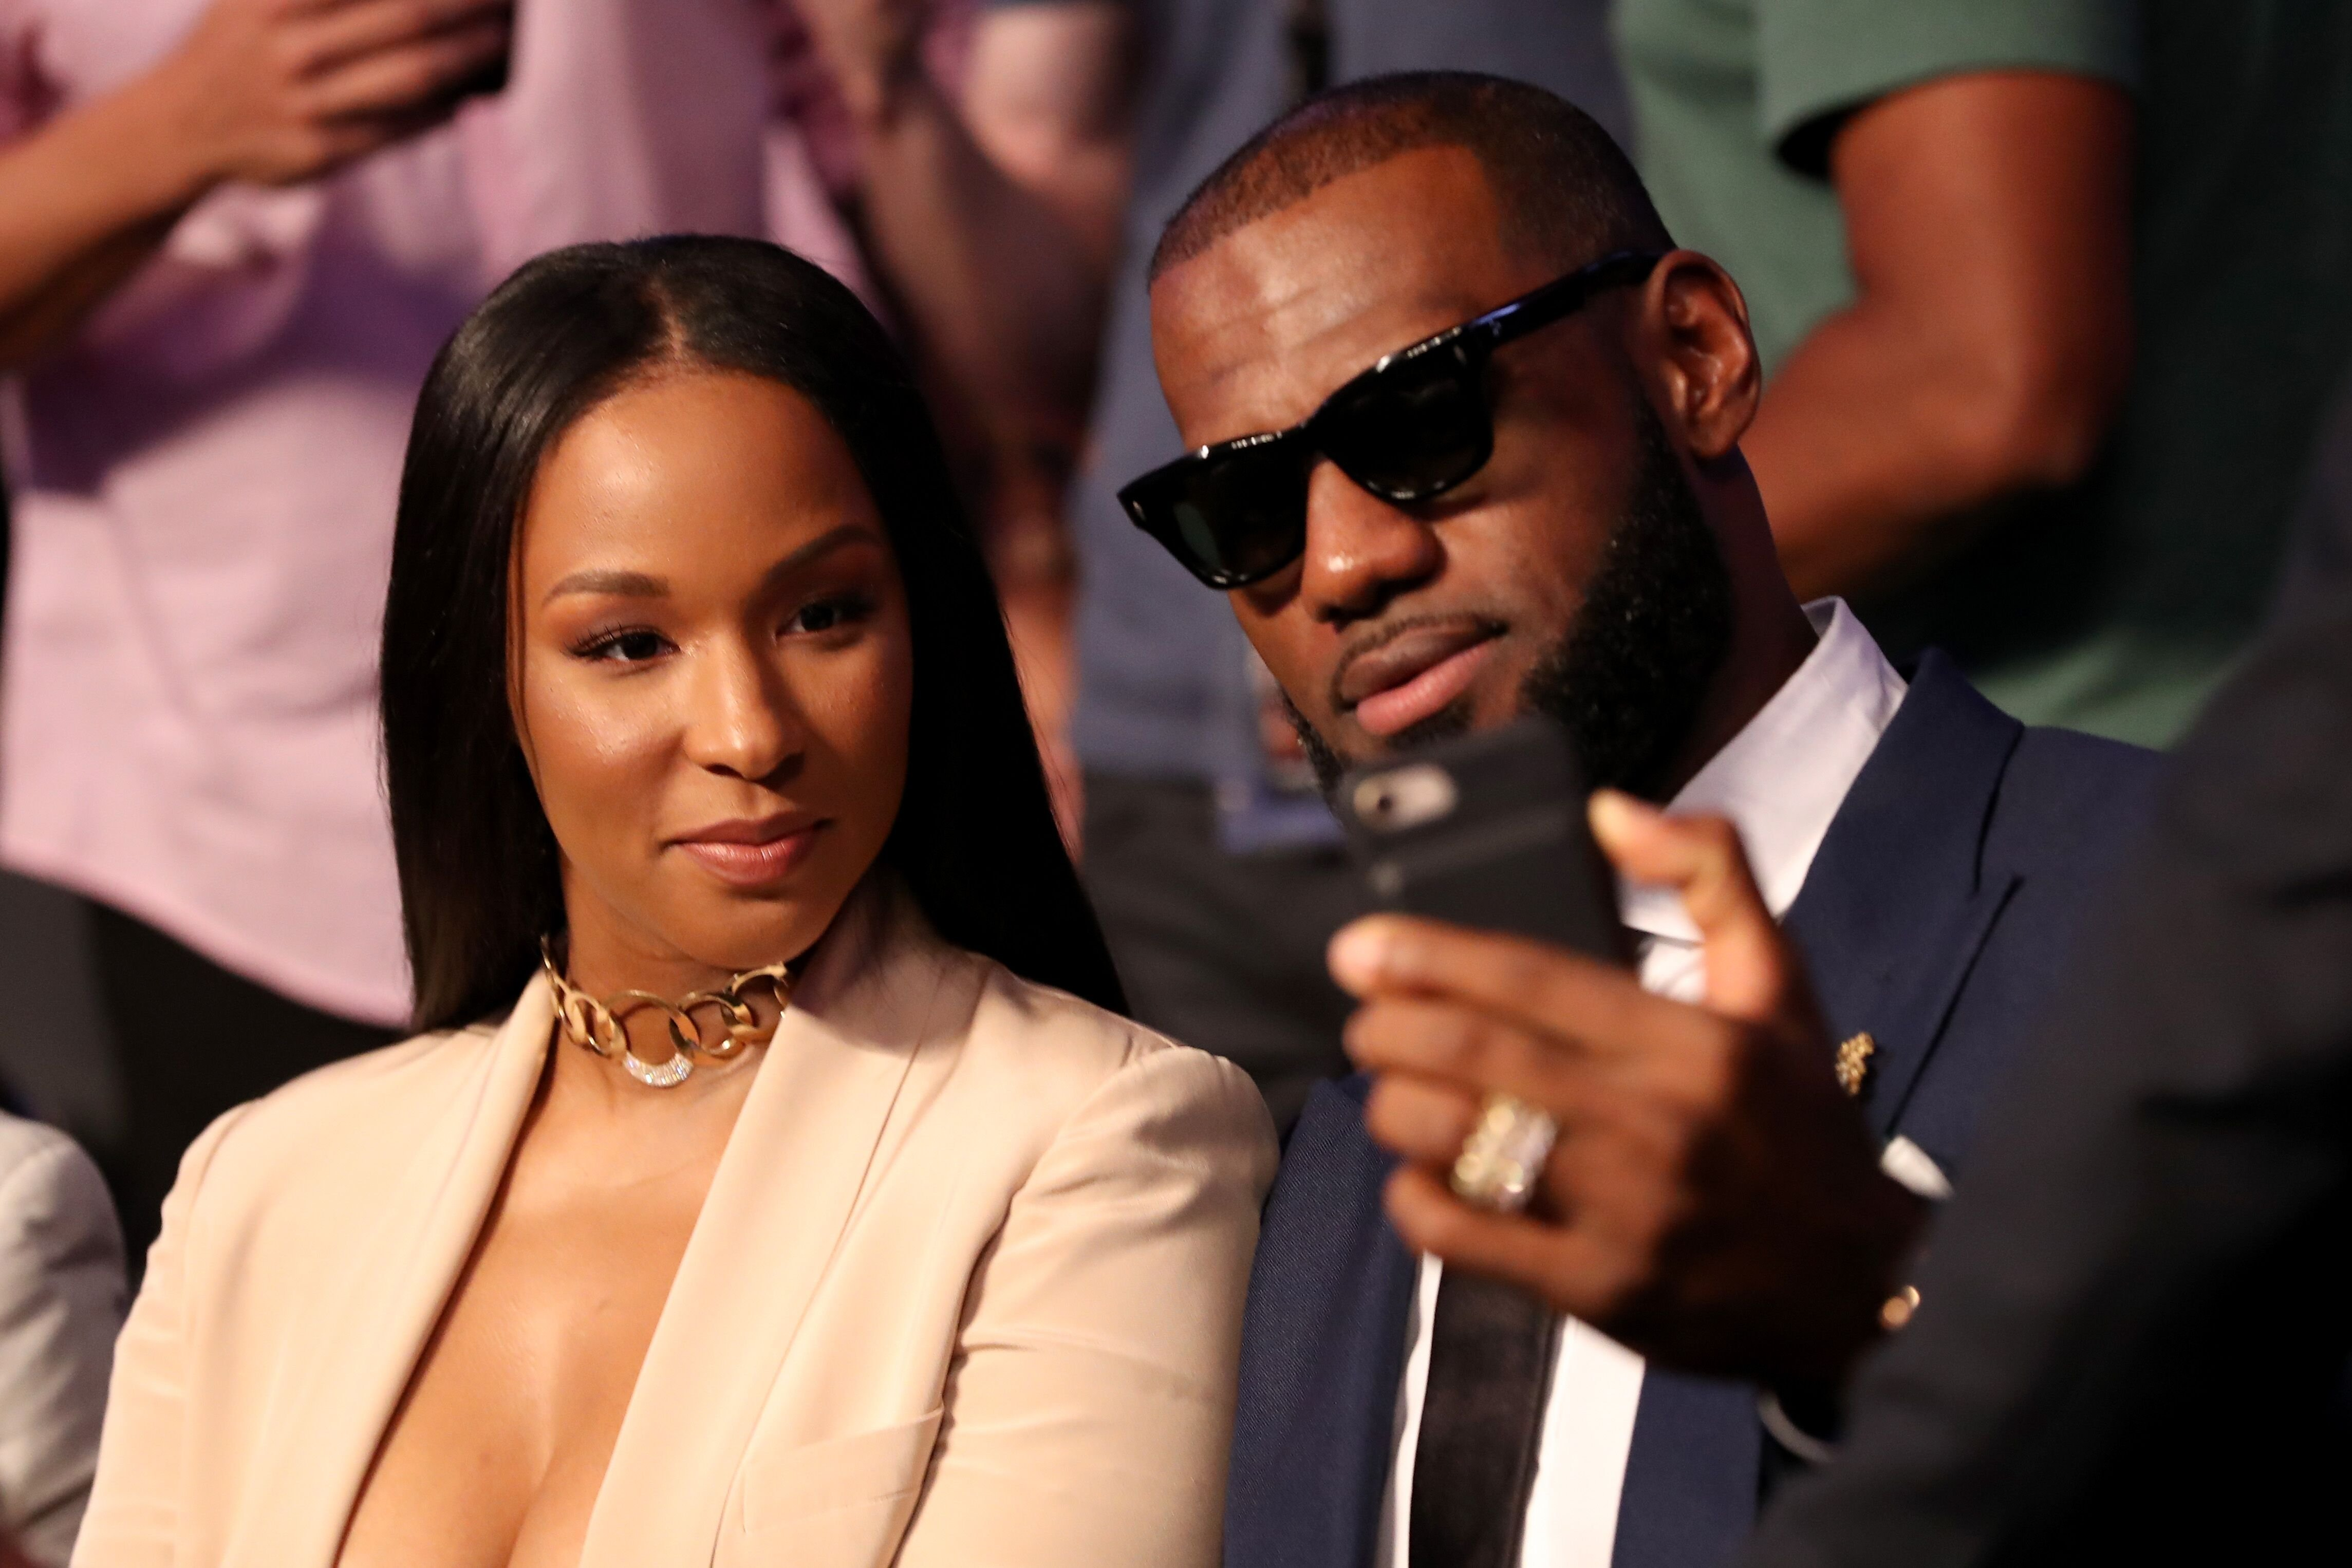 LeBron and Savannah James at Mayweather vs Mcgregor-fight/ Source: Getty Images